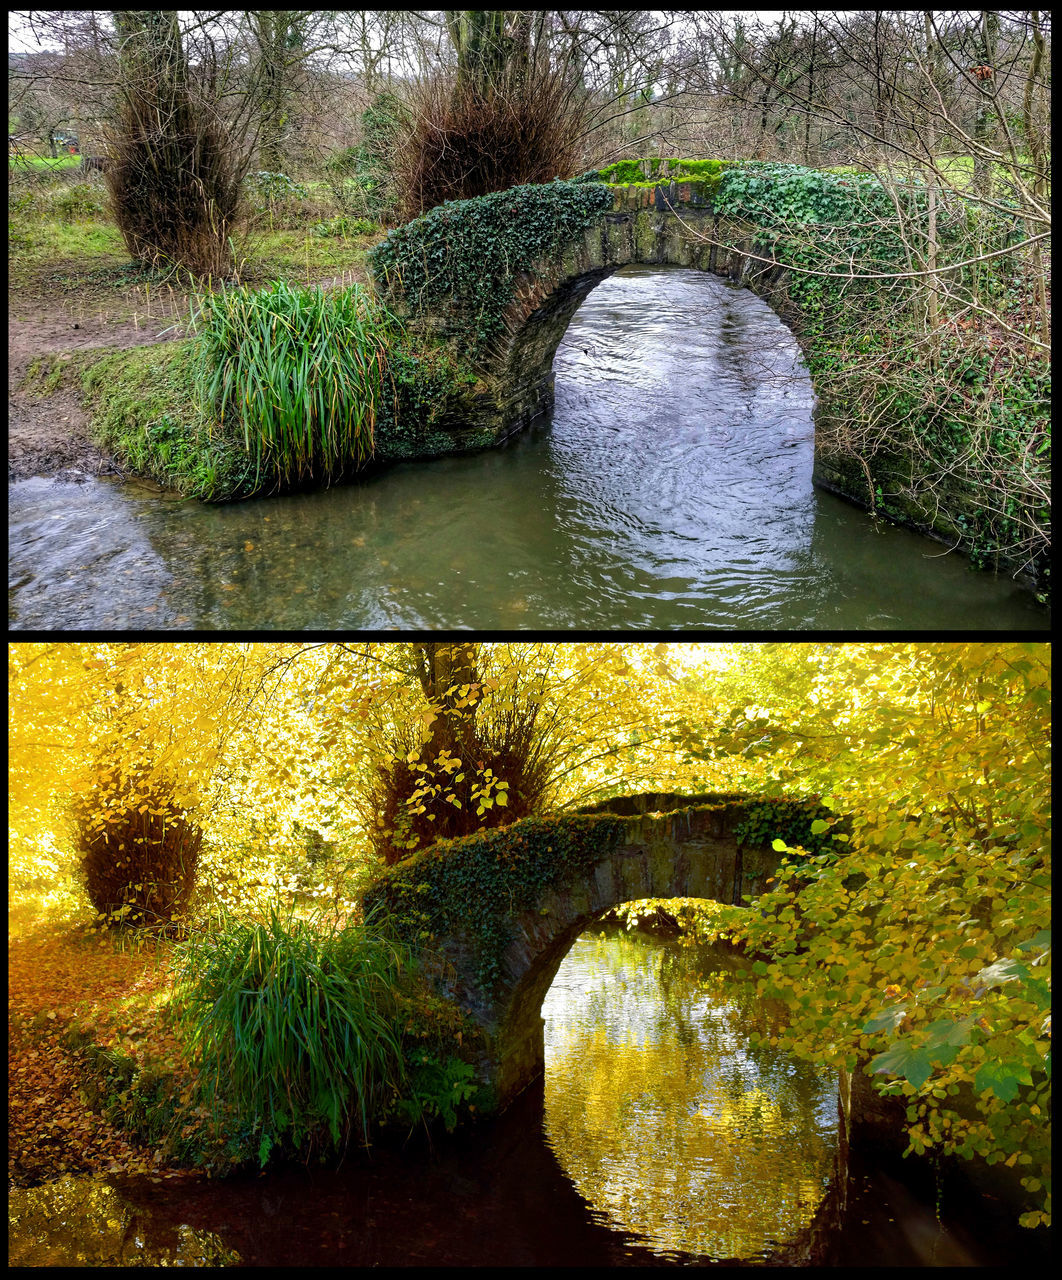 water, nature, river, plant, day, no people, outdoors, tranquility, growth, bridge - man made structure, beauty in nature, tree, architecture, grass